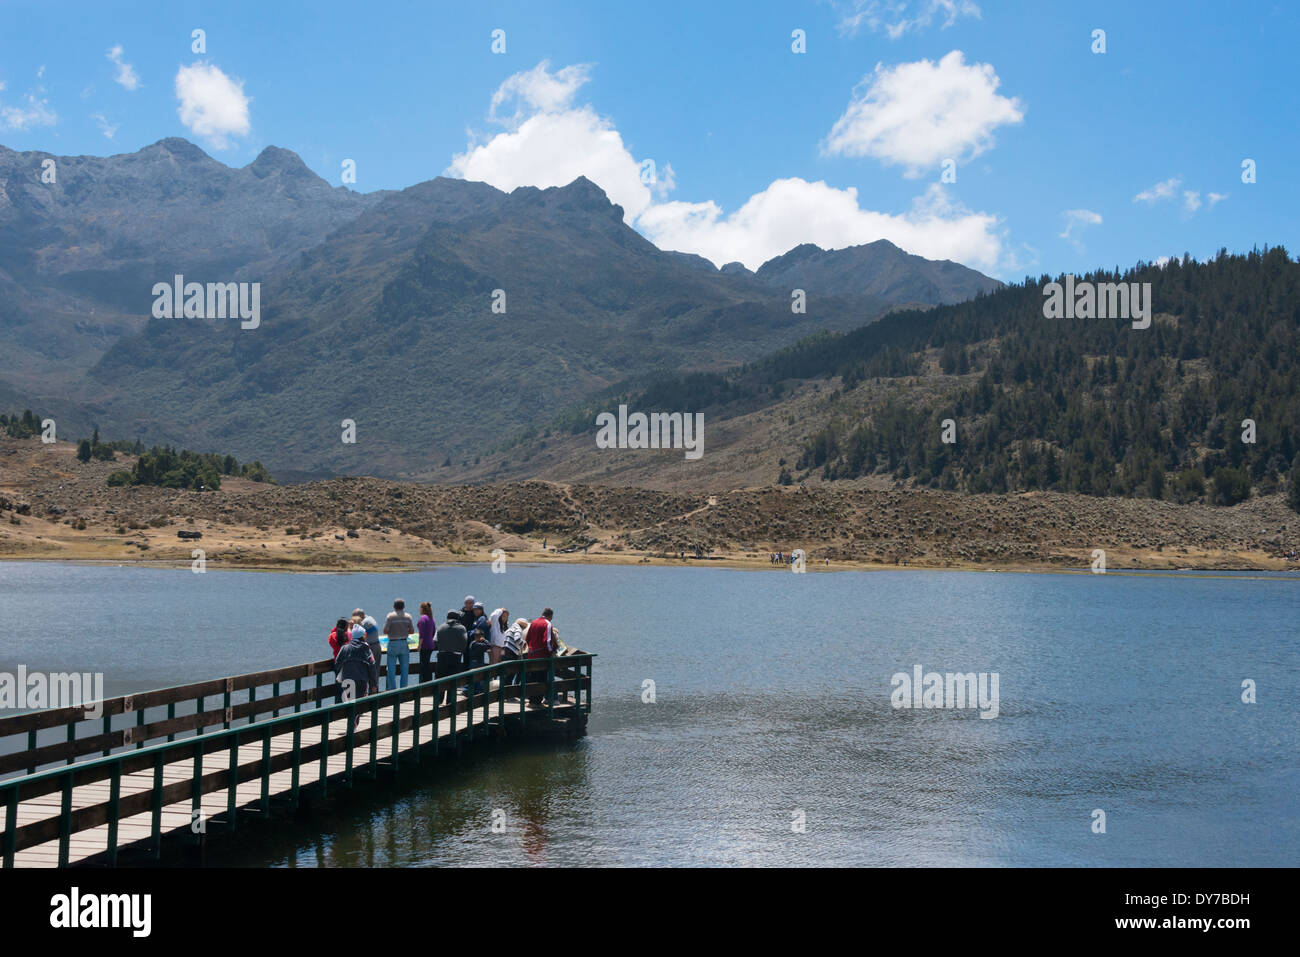 Tourists watching mountain and lake, Sierra Nevada National Park, Venezuela - Stock Image